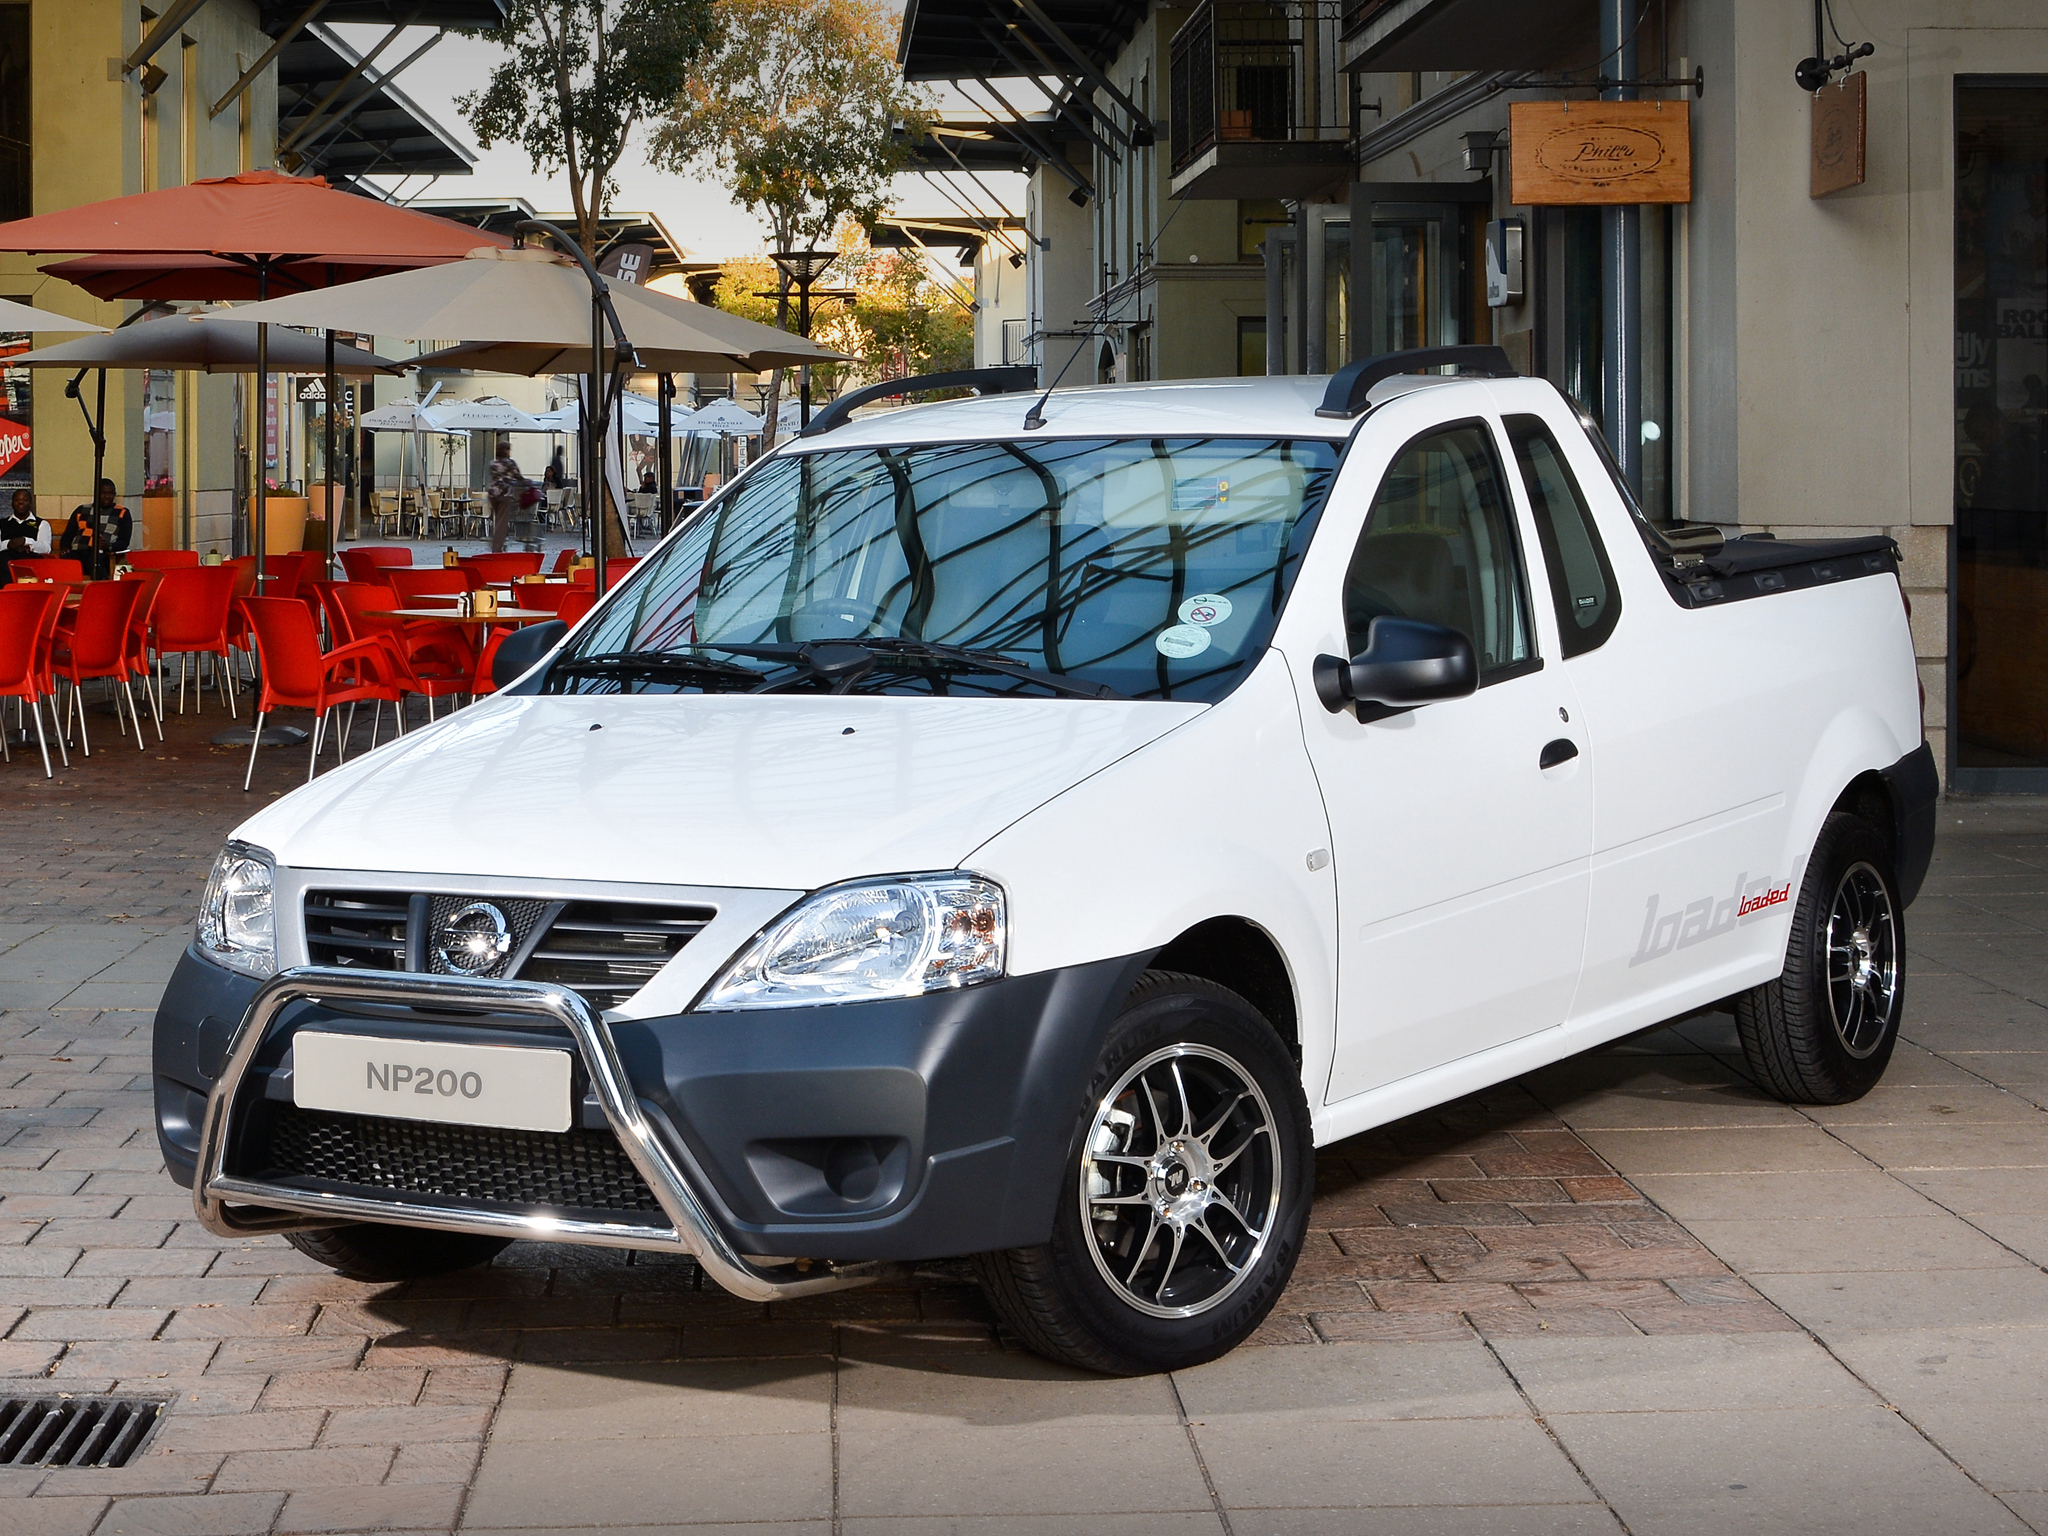 nissan np200 is a dacia logan pick up in south africa autoevolution. Black Bedroom Furniture Sets. Home Design Ideas